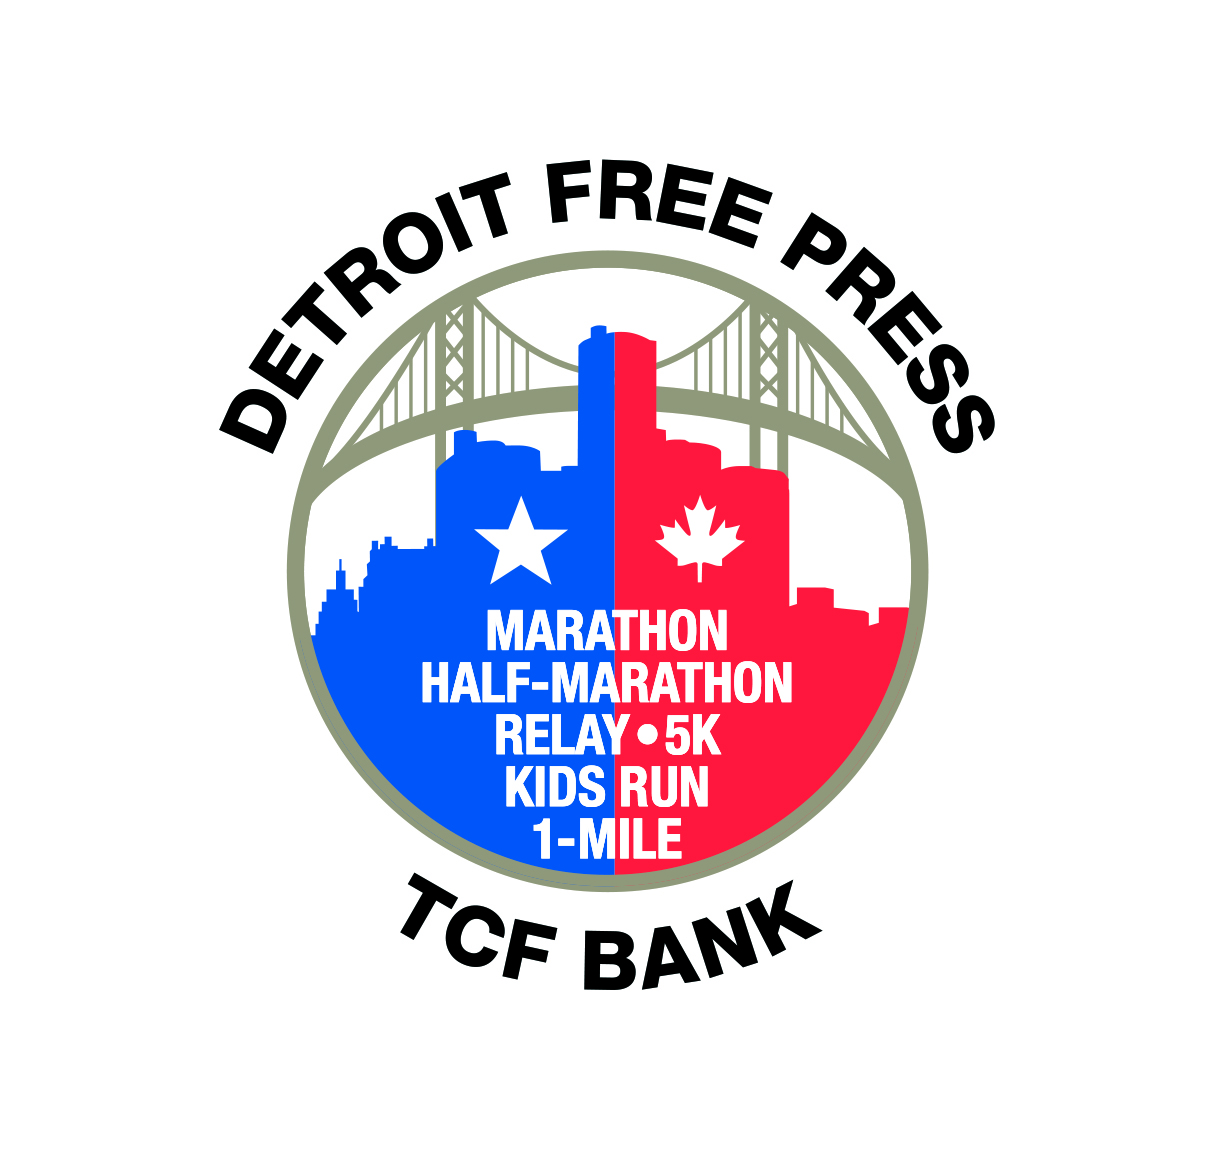 Detroit Free Press TCF Bank Marathon